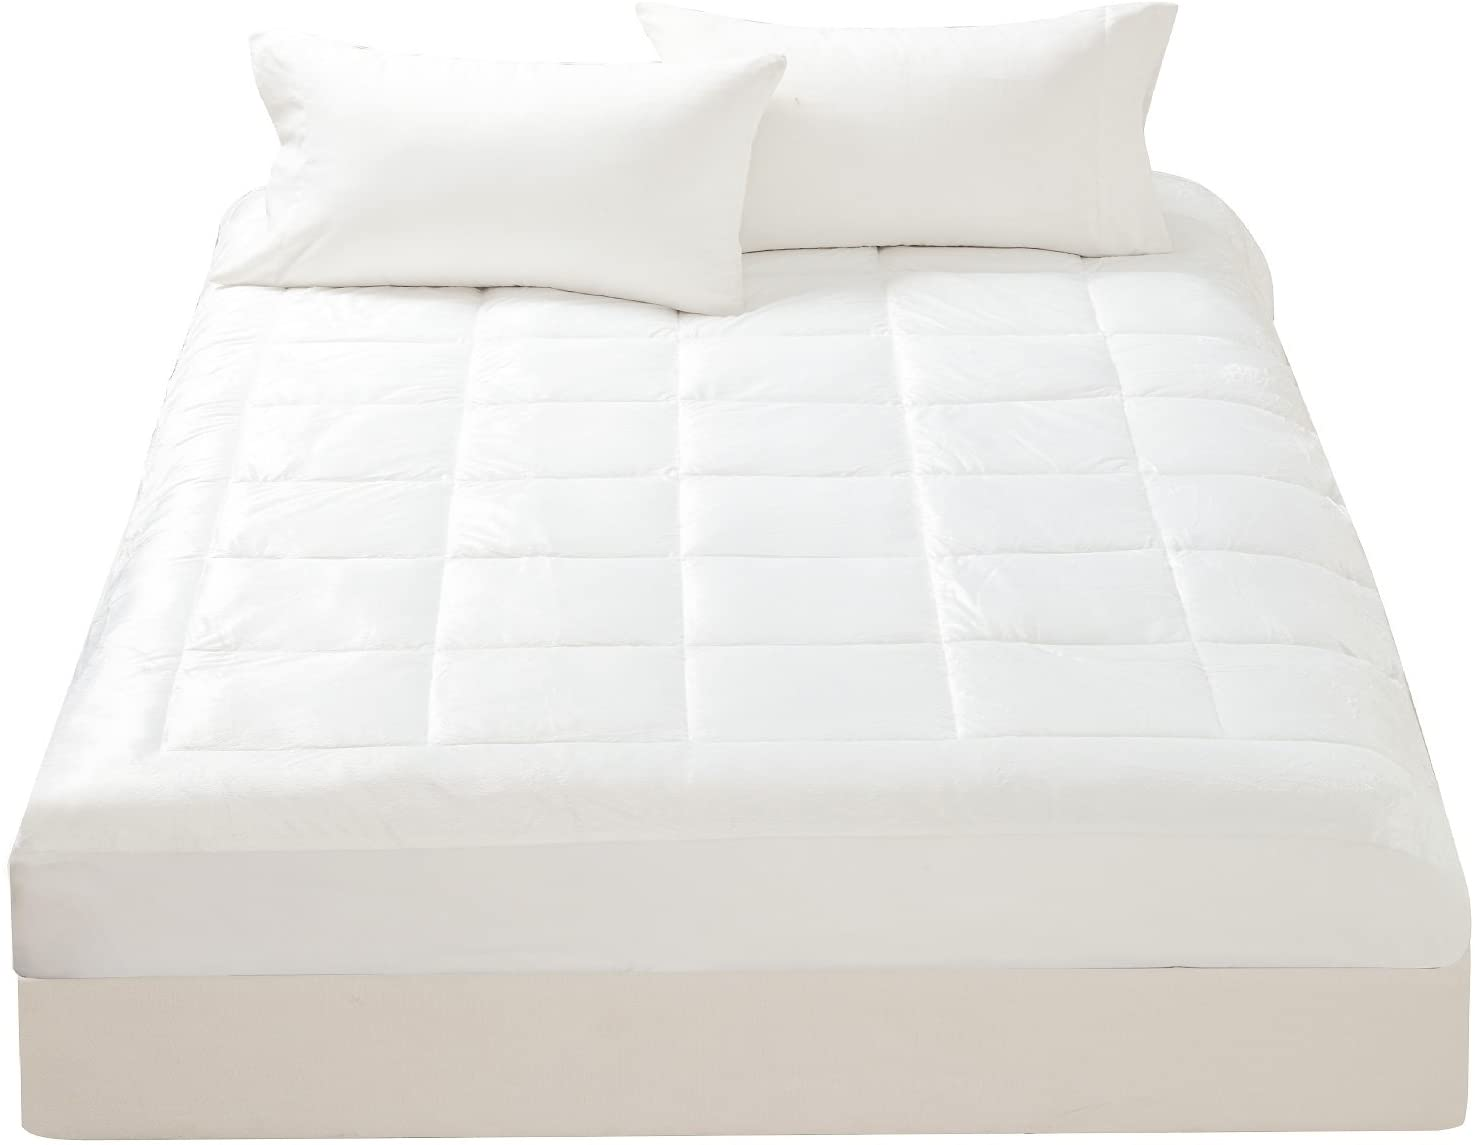 overlay Fully Fitted Queen Size Micro fibre filled Mattress topper